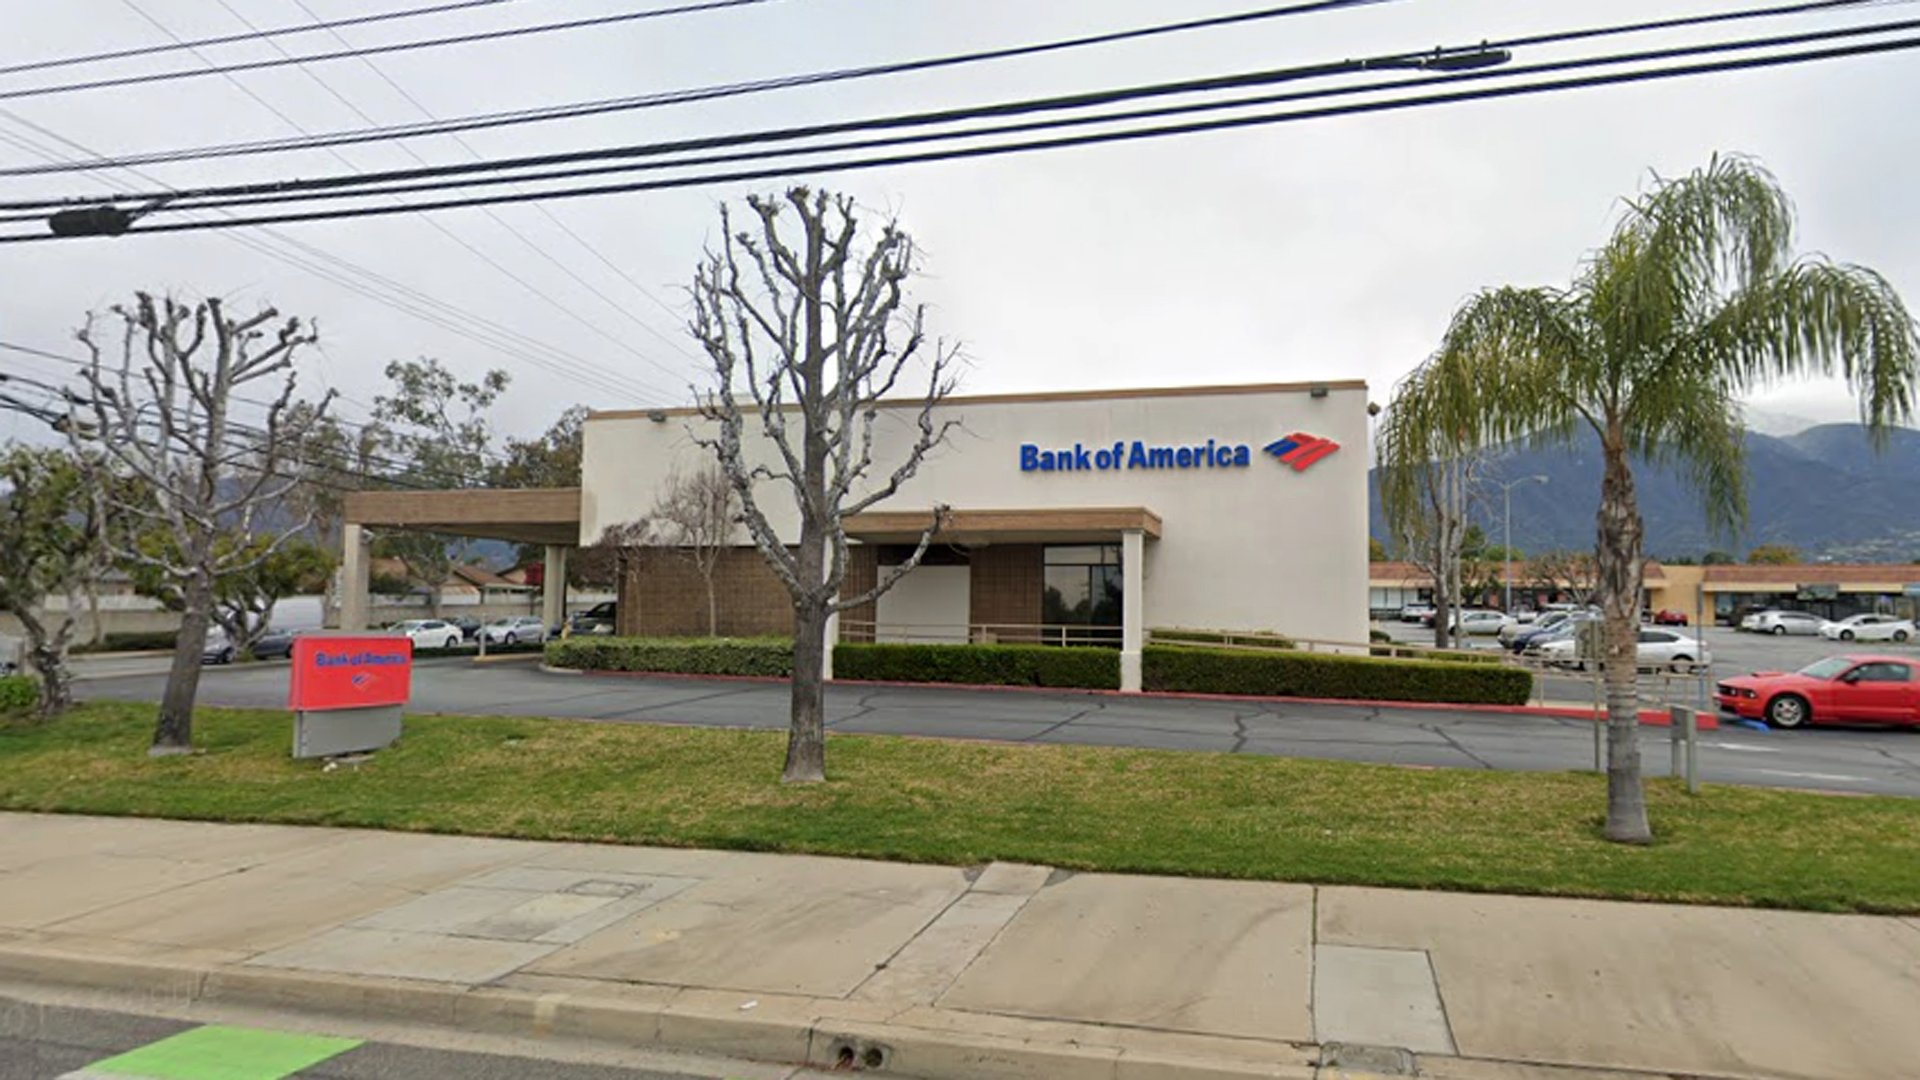 A Bank of America branch at Baseline Road and Carnellian Street, as pictured in a Google Street View image.